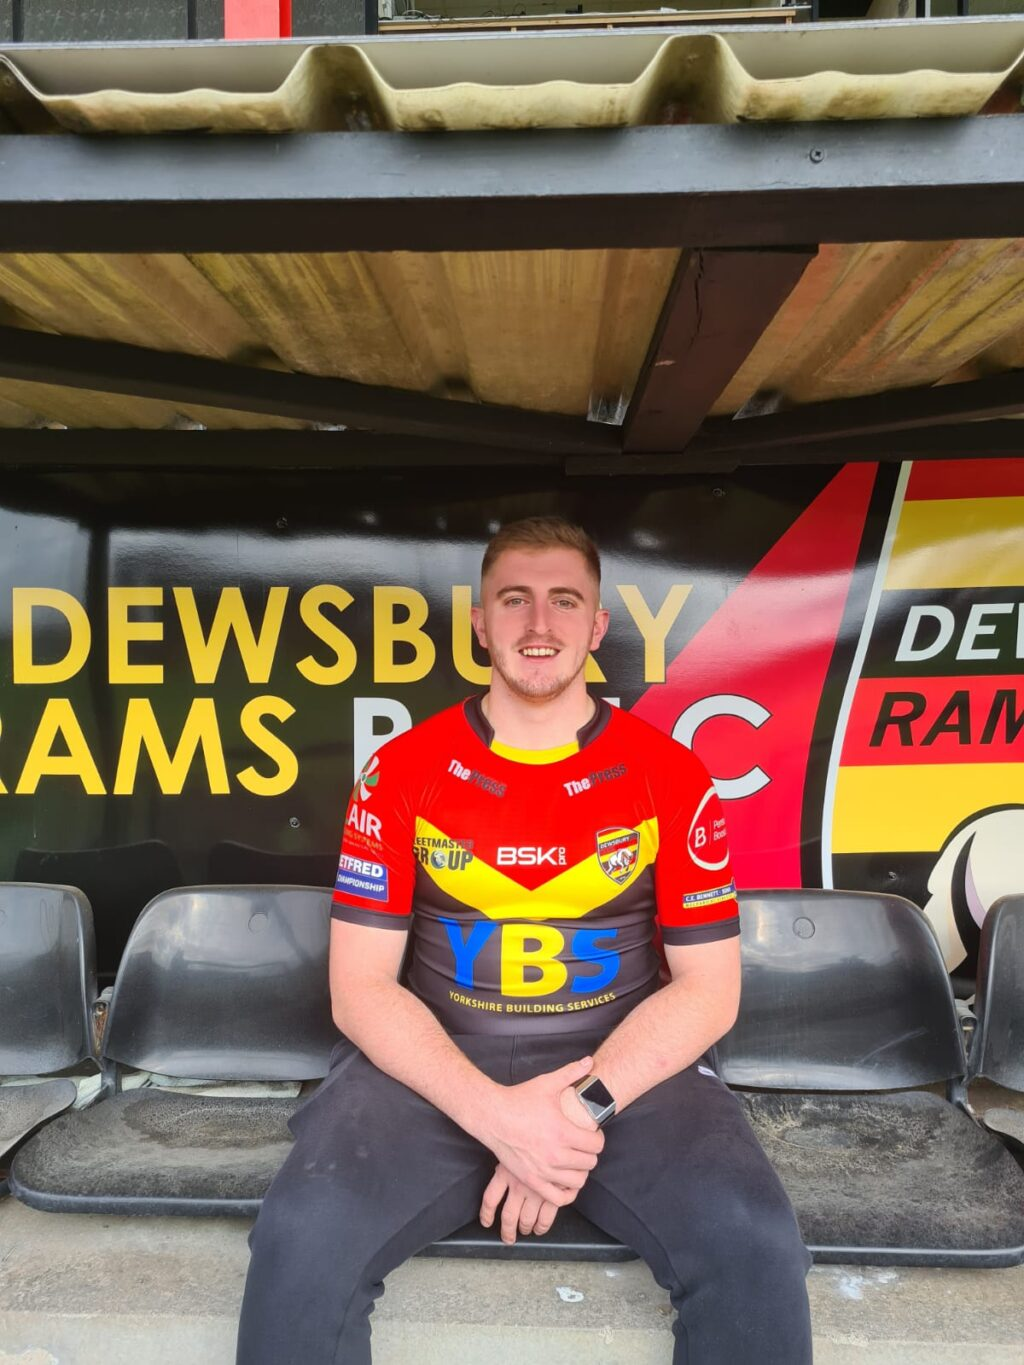 Wardill- It was an easy decision to join the Rams